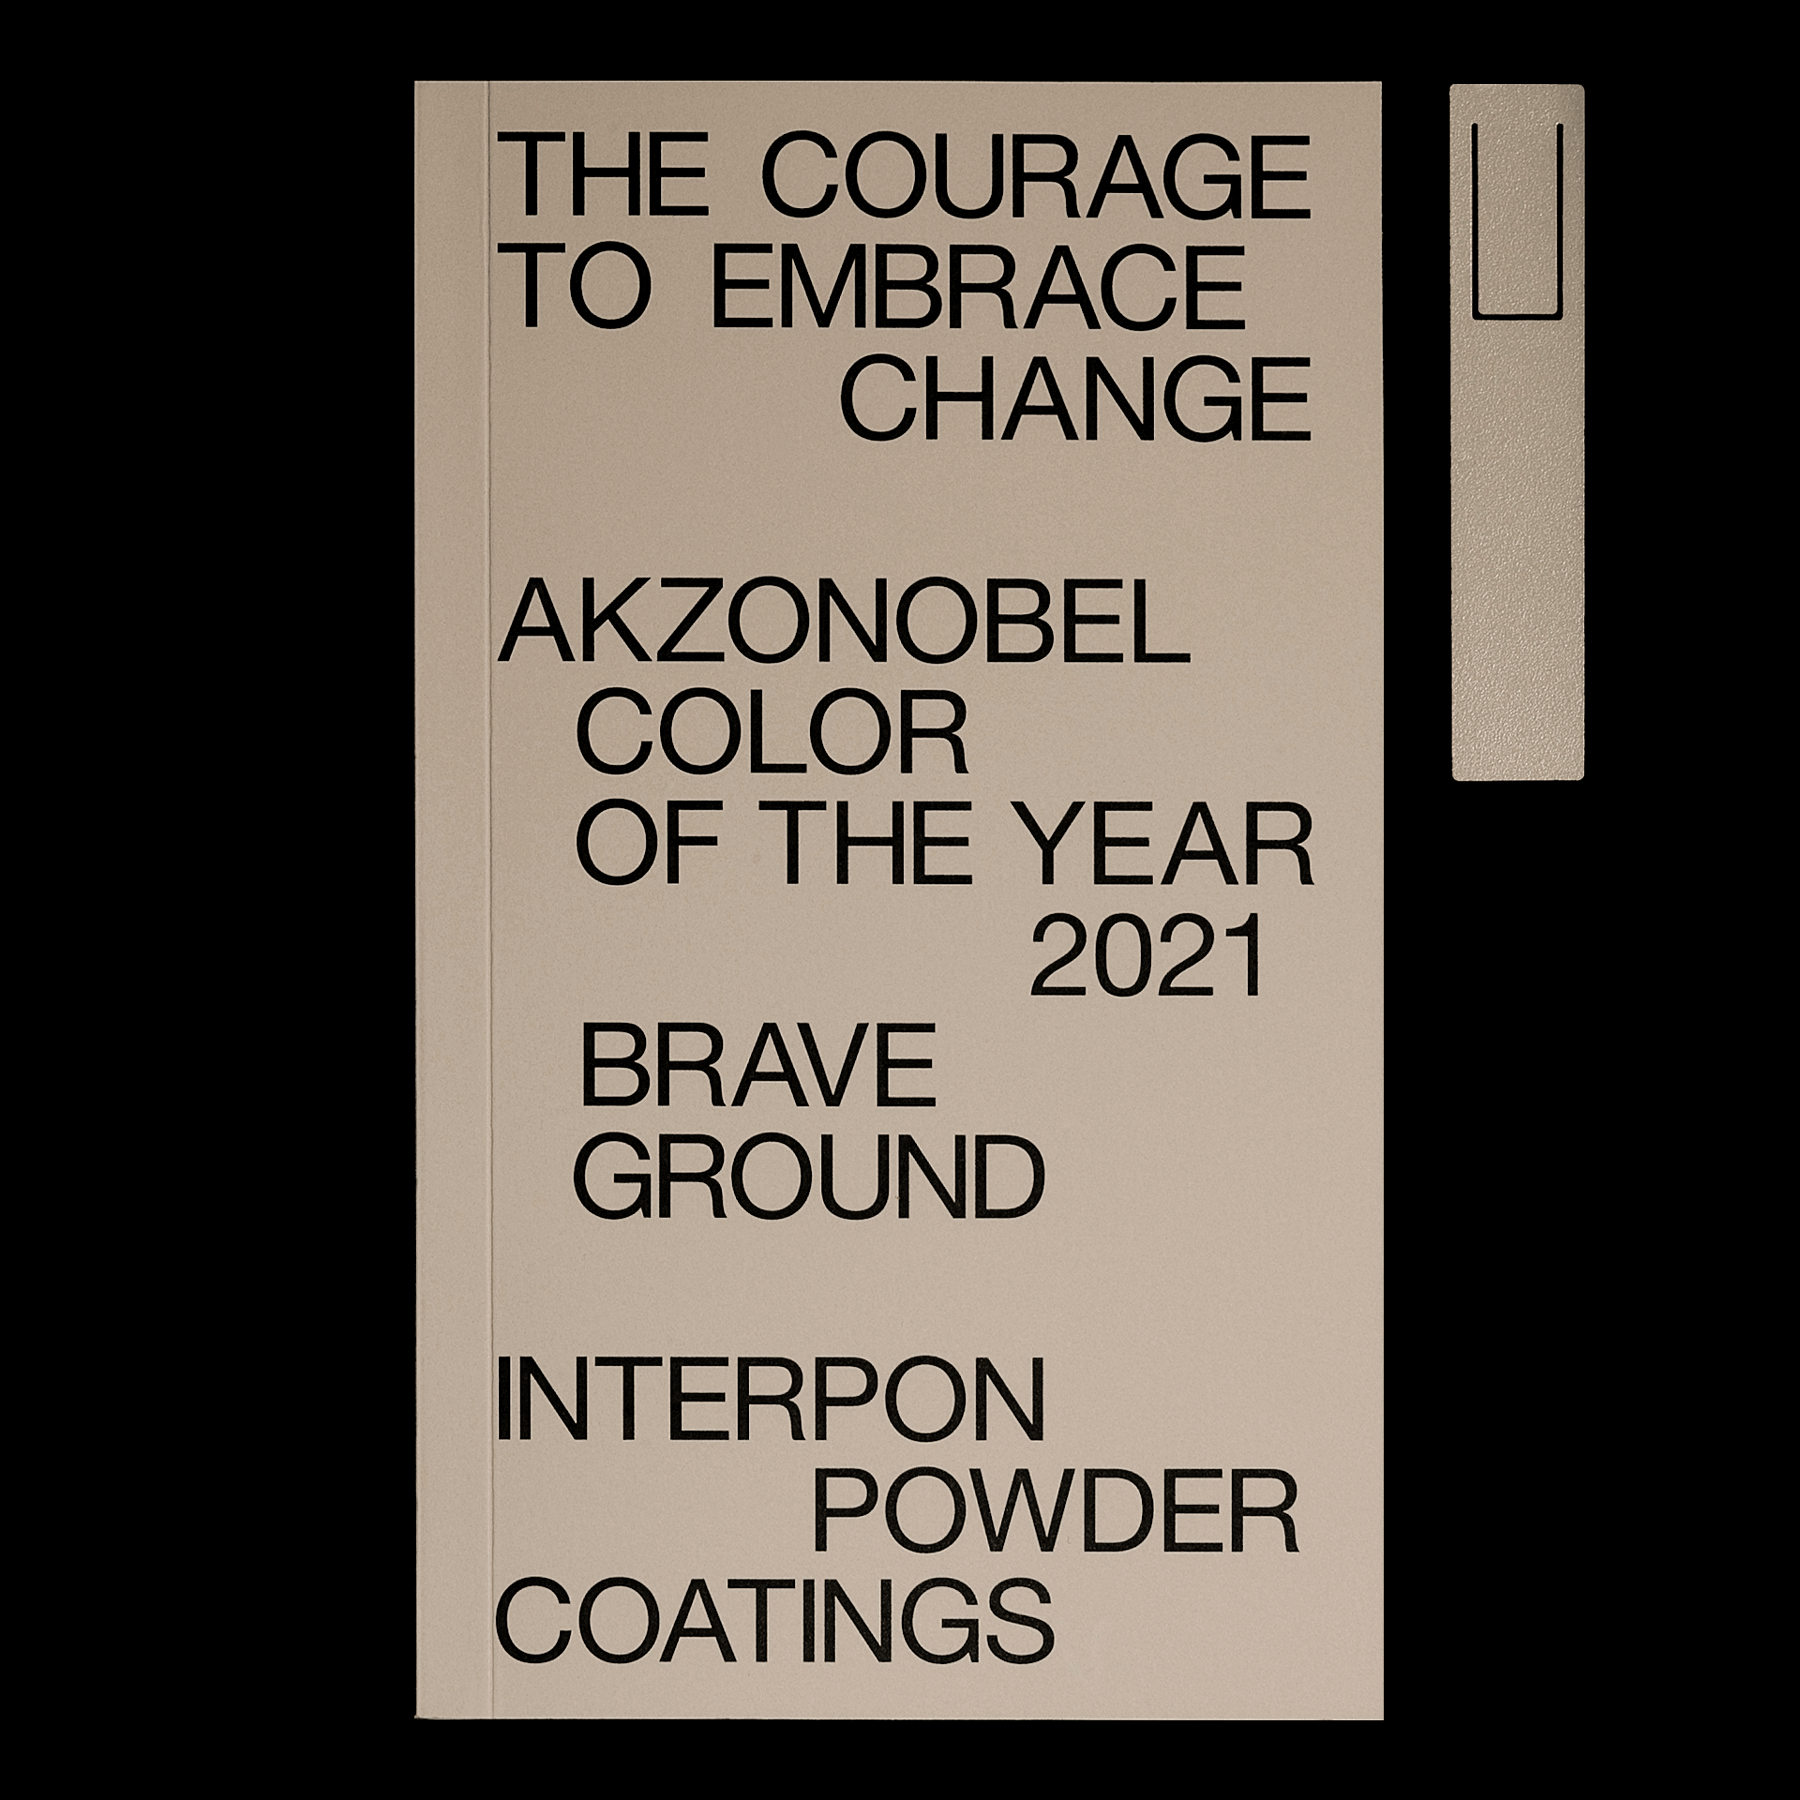 AkzoNobel's Color of the Year 2021 Brave Ground